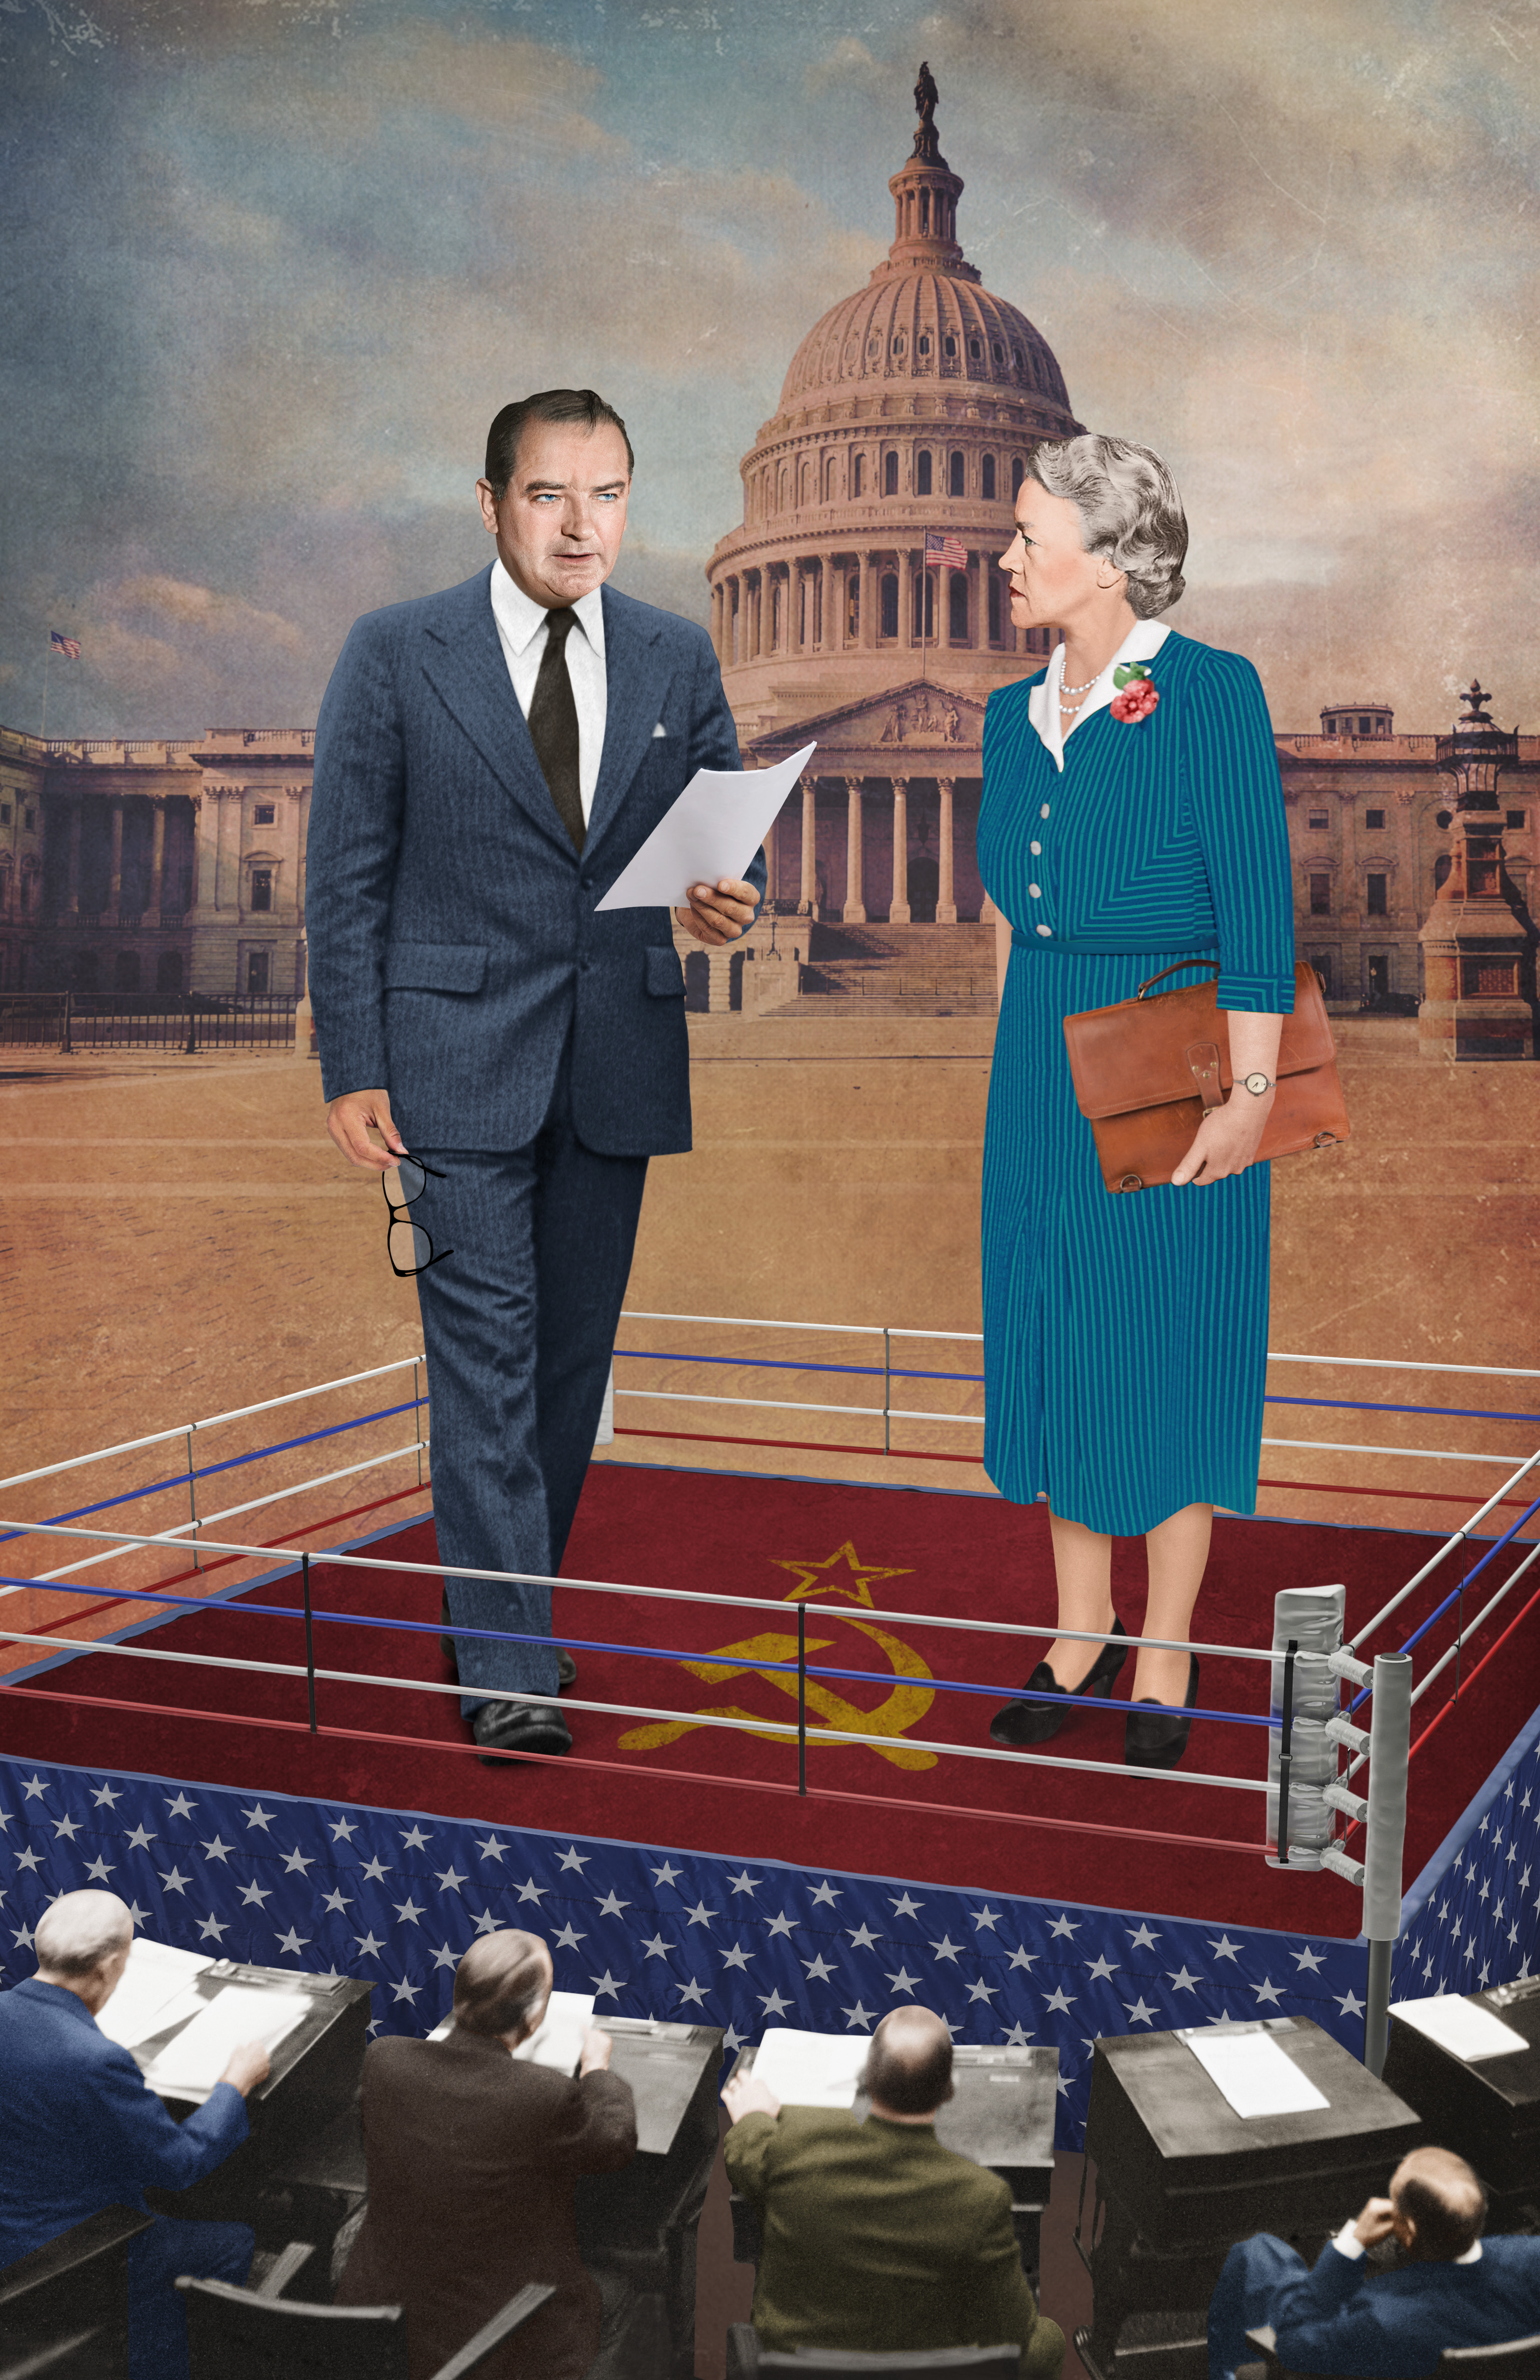 Conscience Artwork. Joseph McCarthy & Margaret Chase Smith Stand on a Boxing Rink before the Capitol Building.